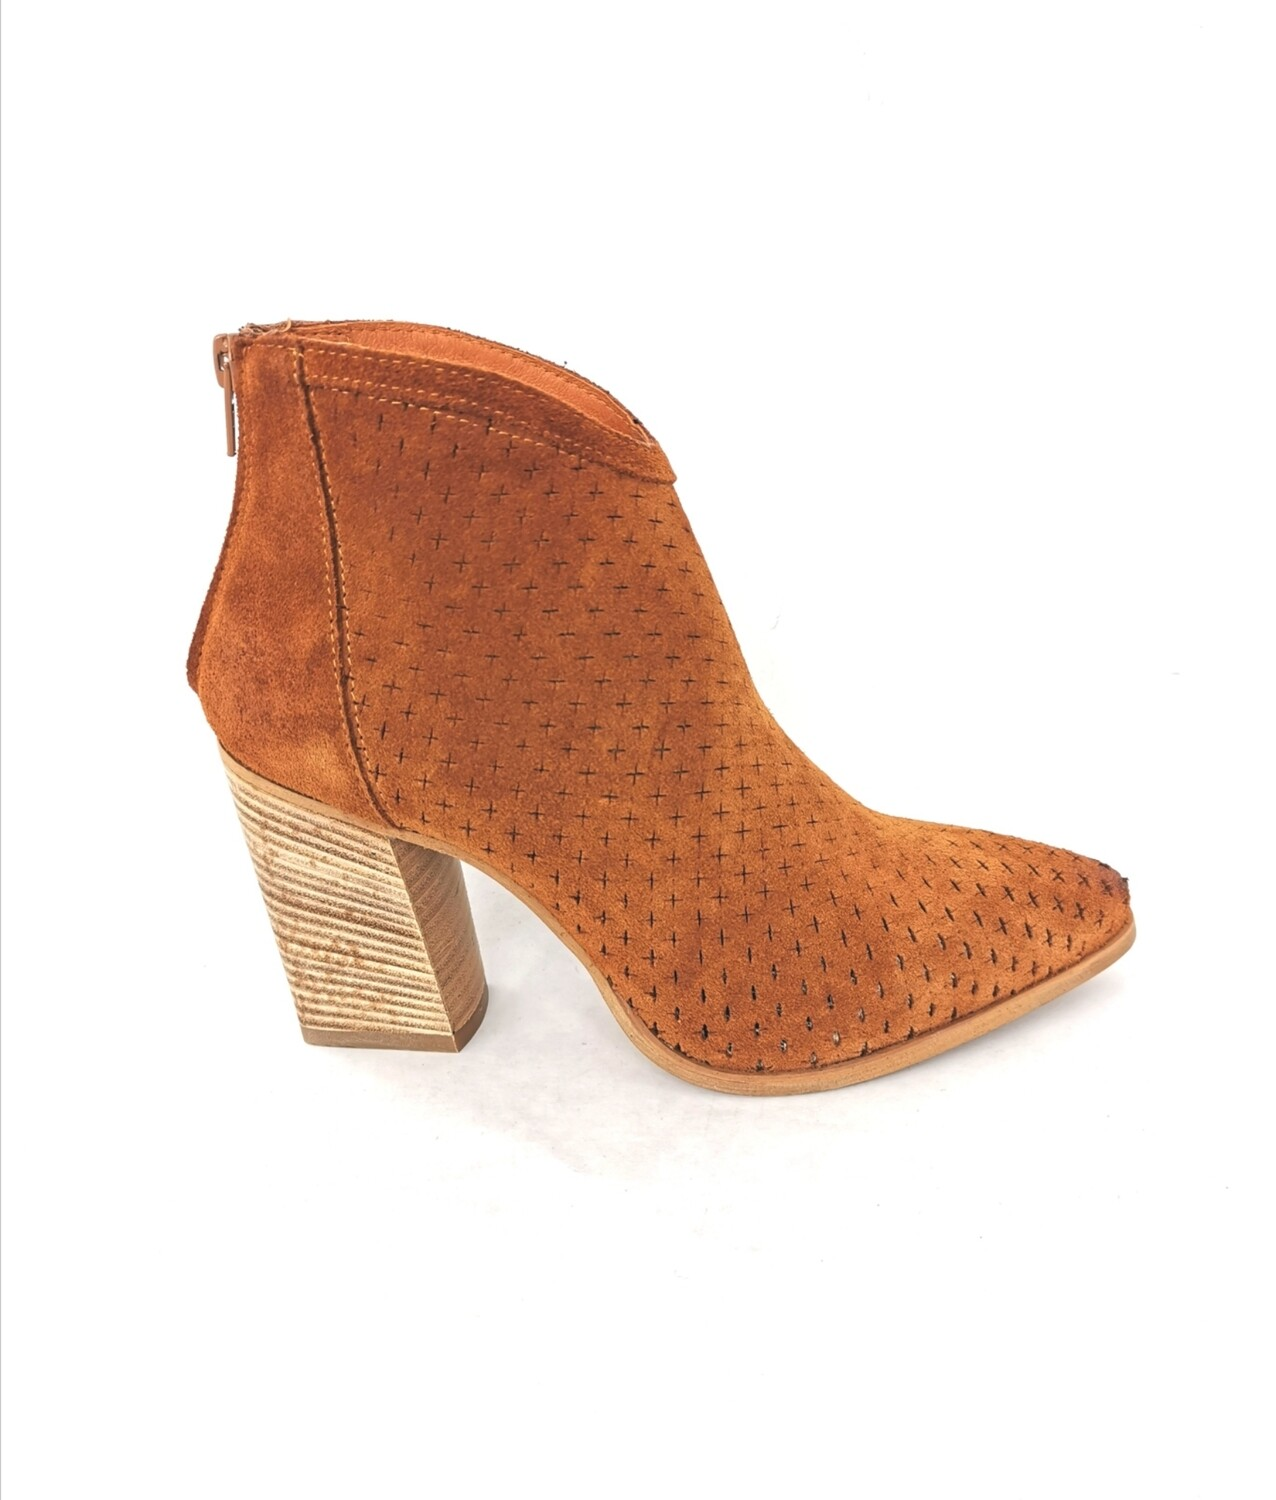 Ankle boots in genuine perforated leather